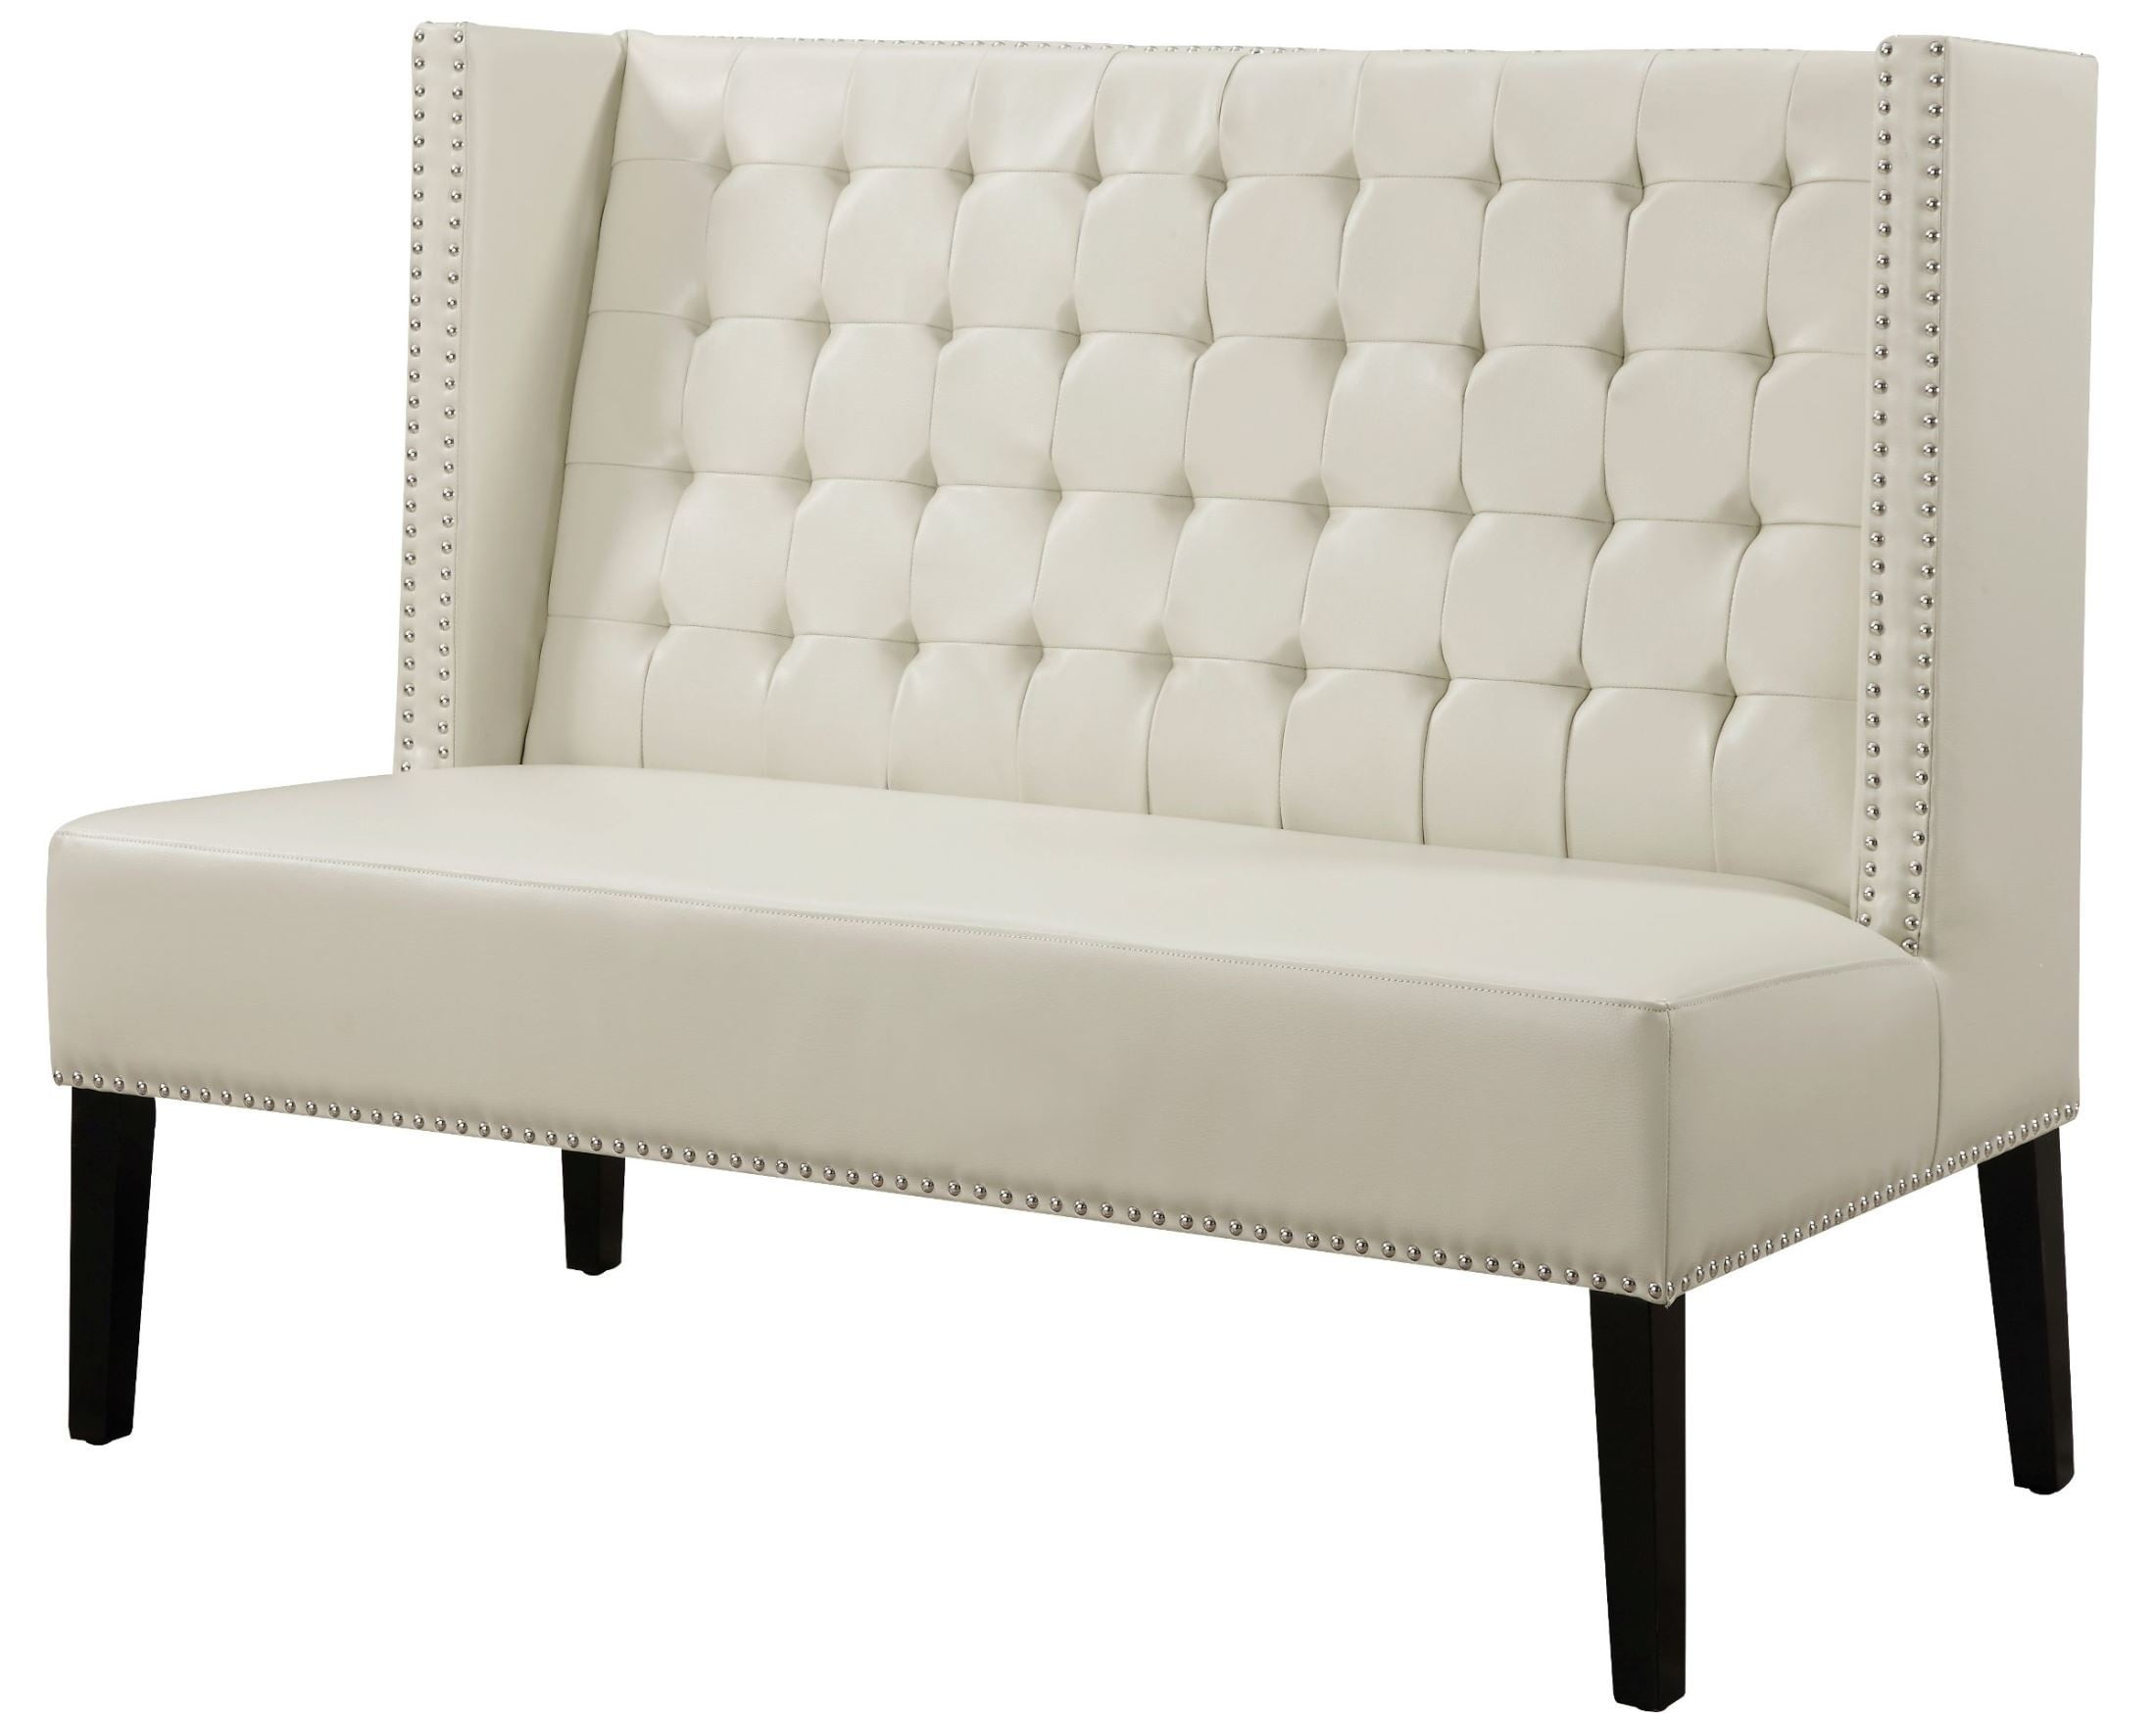 Halifax cream leather banquette bench from tov 63115 for Banquette bench